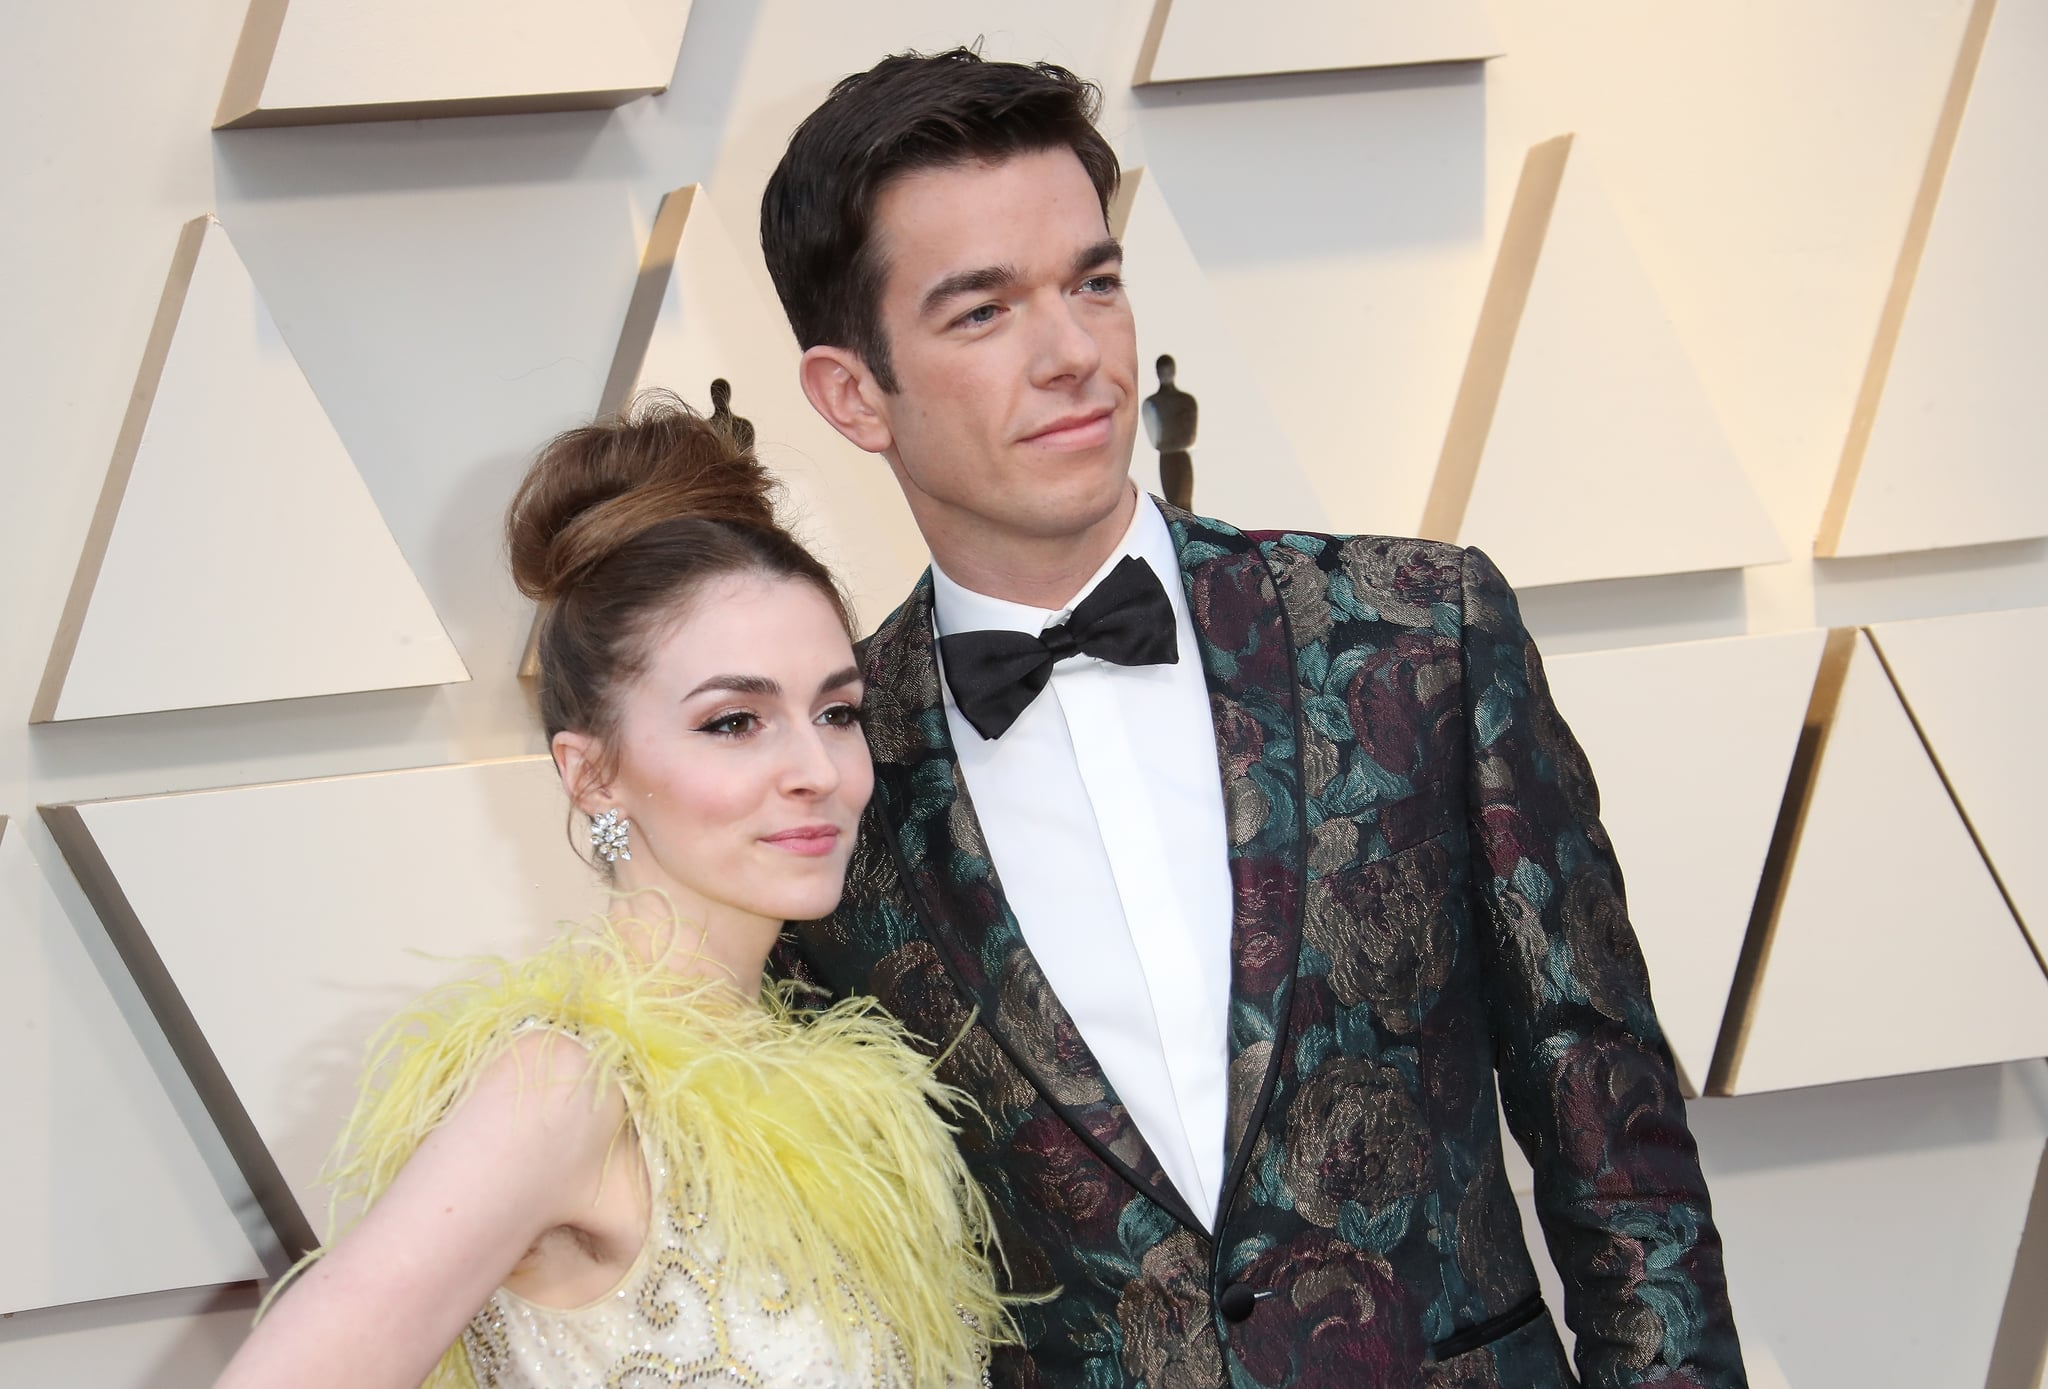 HOLLYWOOD, CA - FEBRUARY 24: Annamarie Tendler and John Mulaney attend the 91st Annual Academy Awards at Hollywood and Highland on February 24, 2019 in Hollywood, California. (Photo by Dan MacMedan/Getty Images)